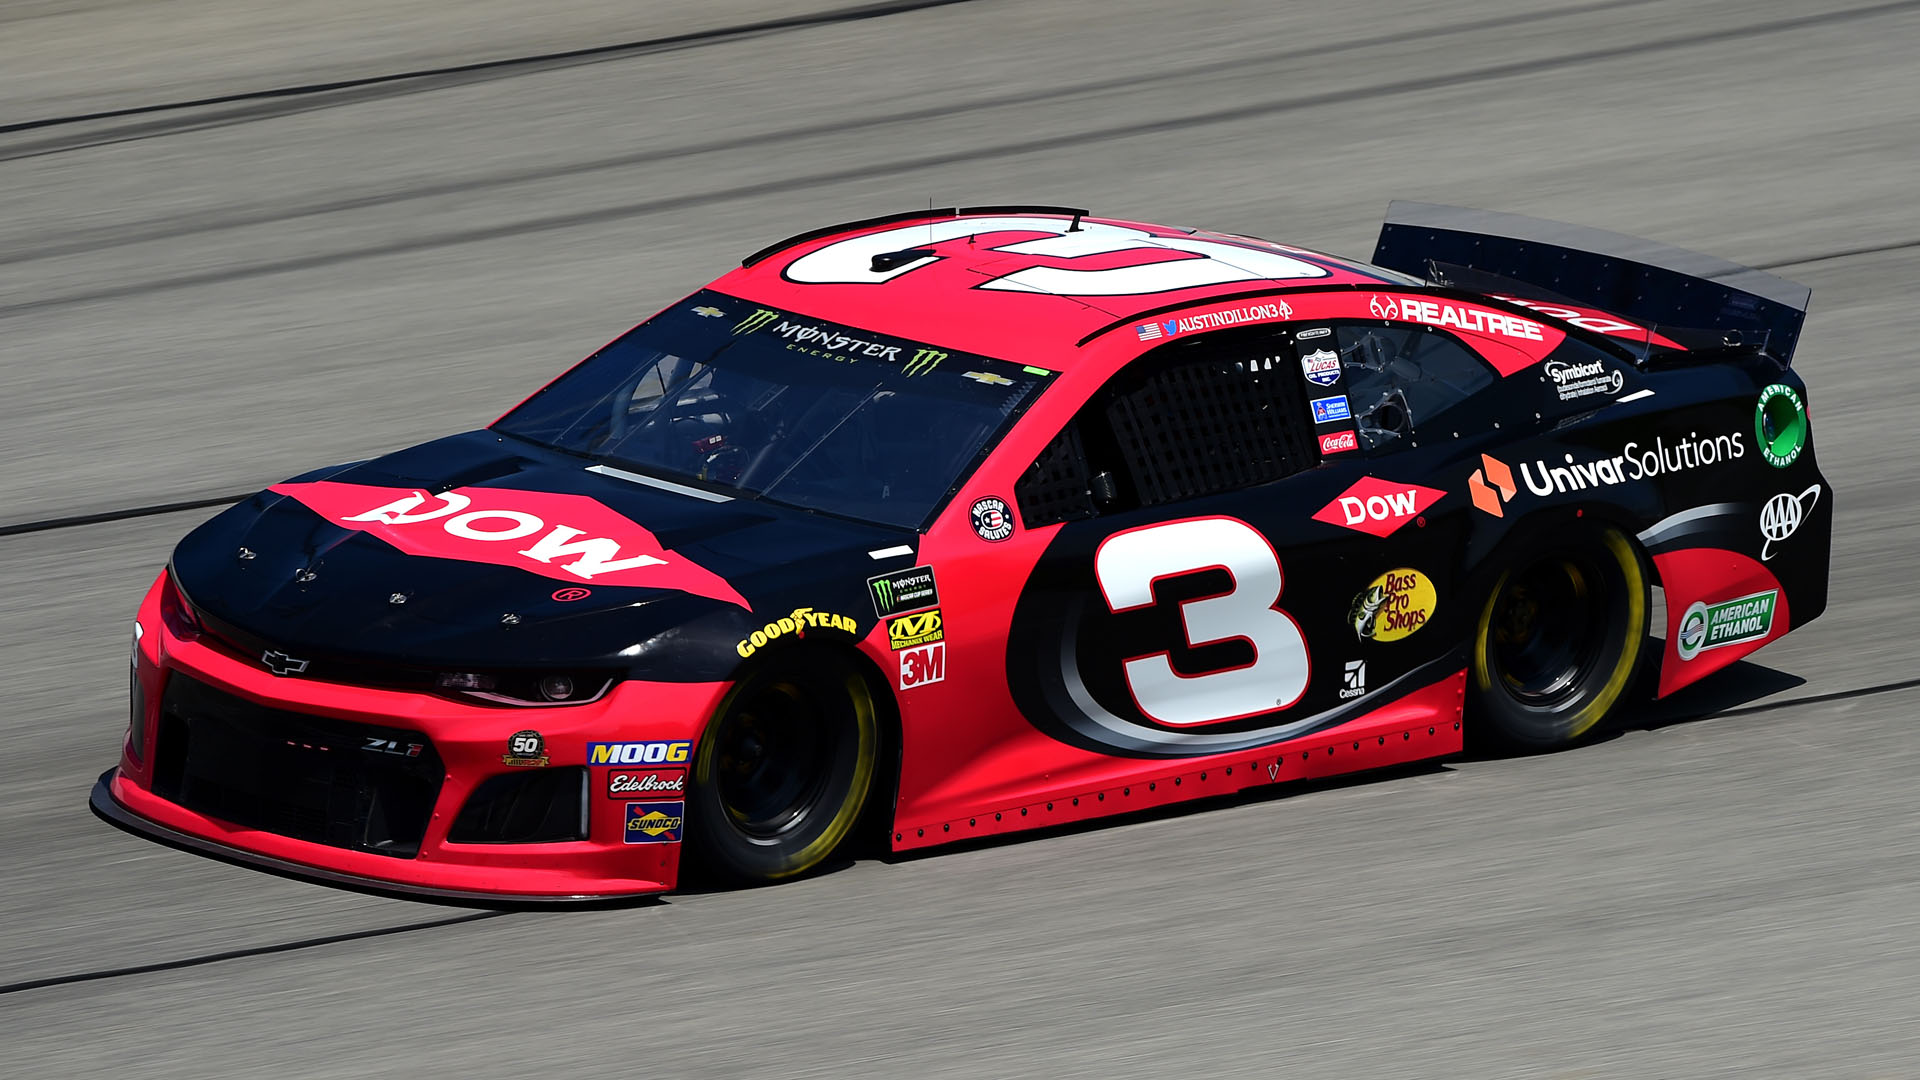 NASCAR starting lineup at Chicago: Austin Dillon on pole; Kevin Harvick starts 2nd